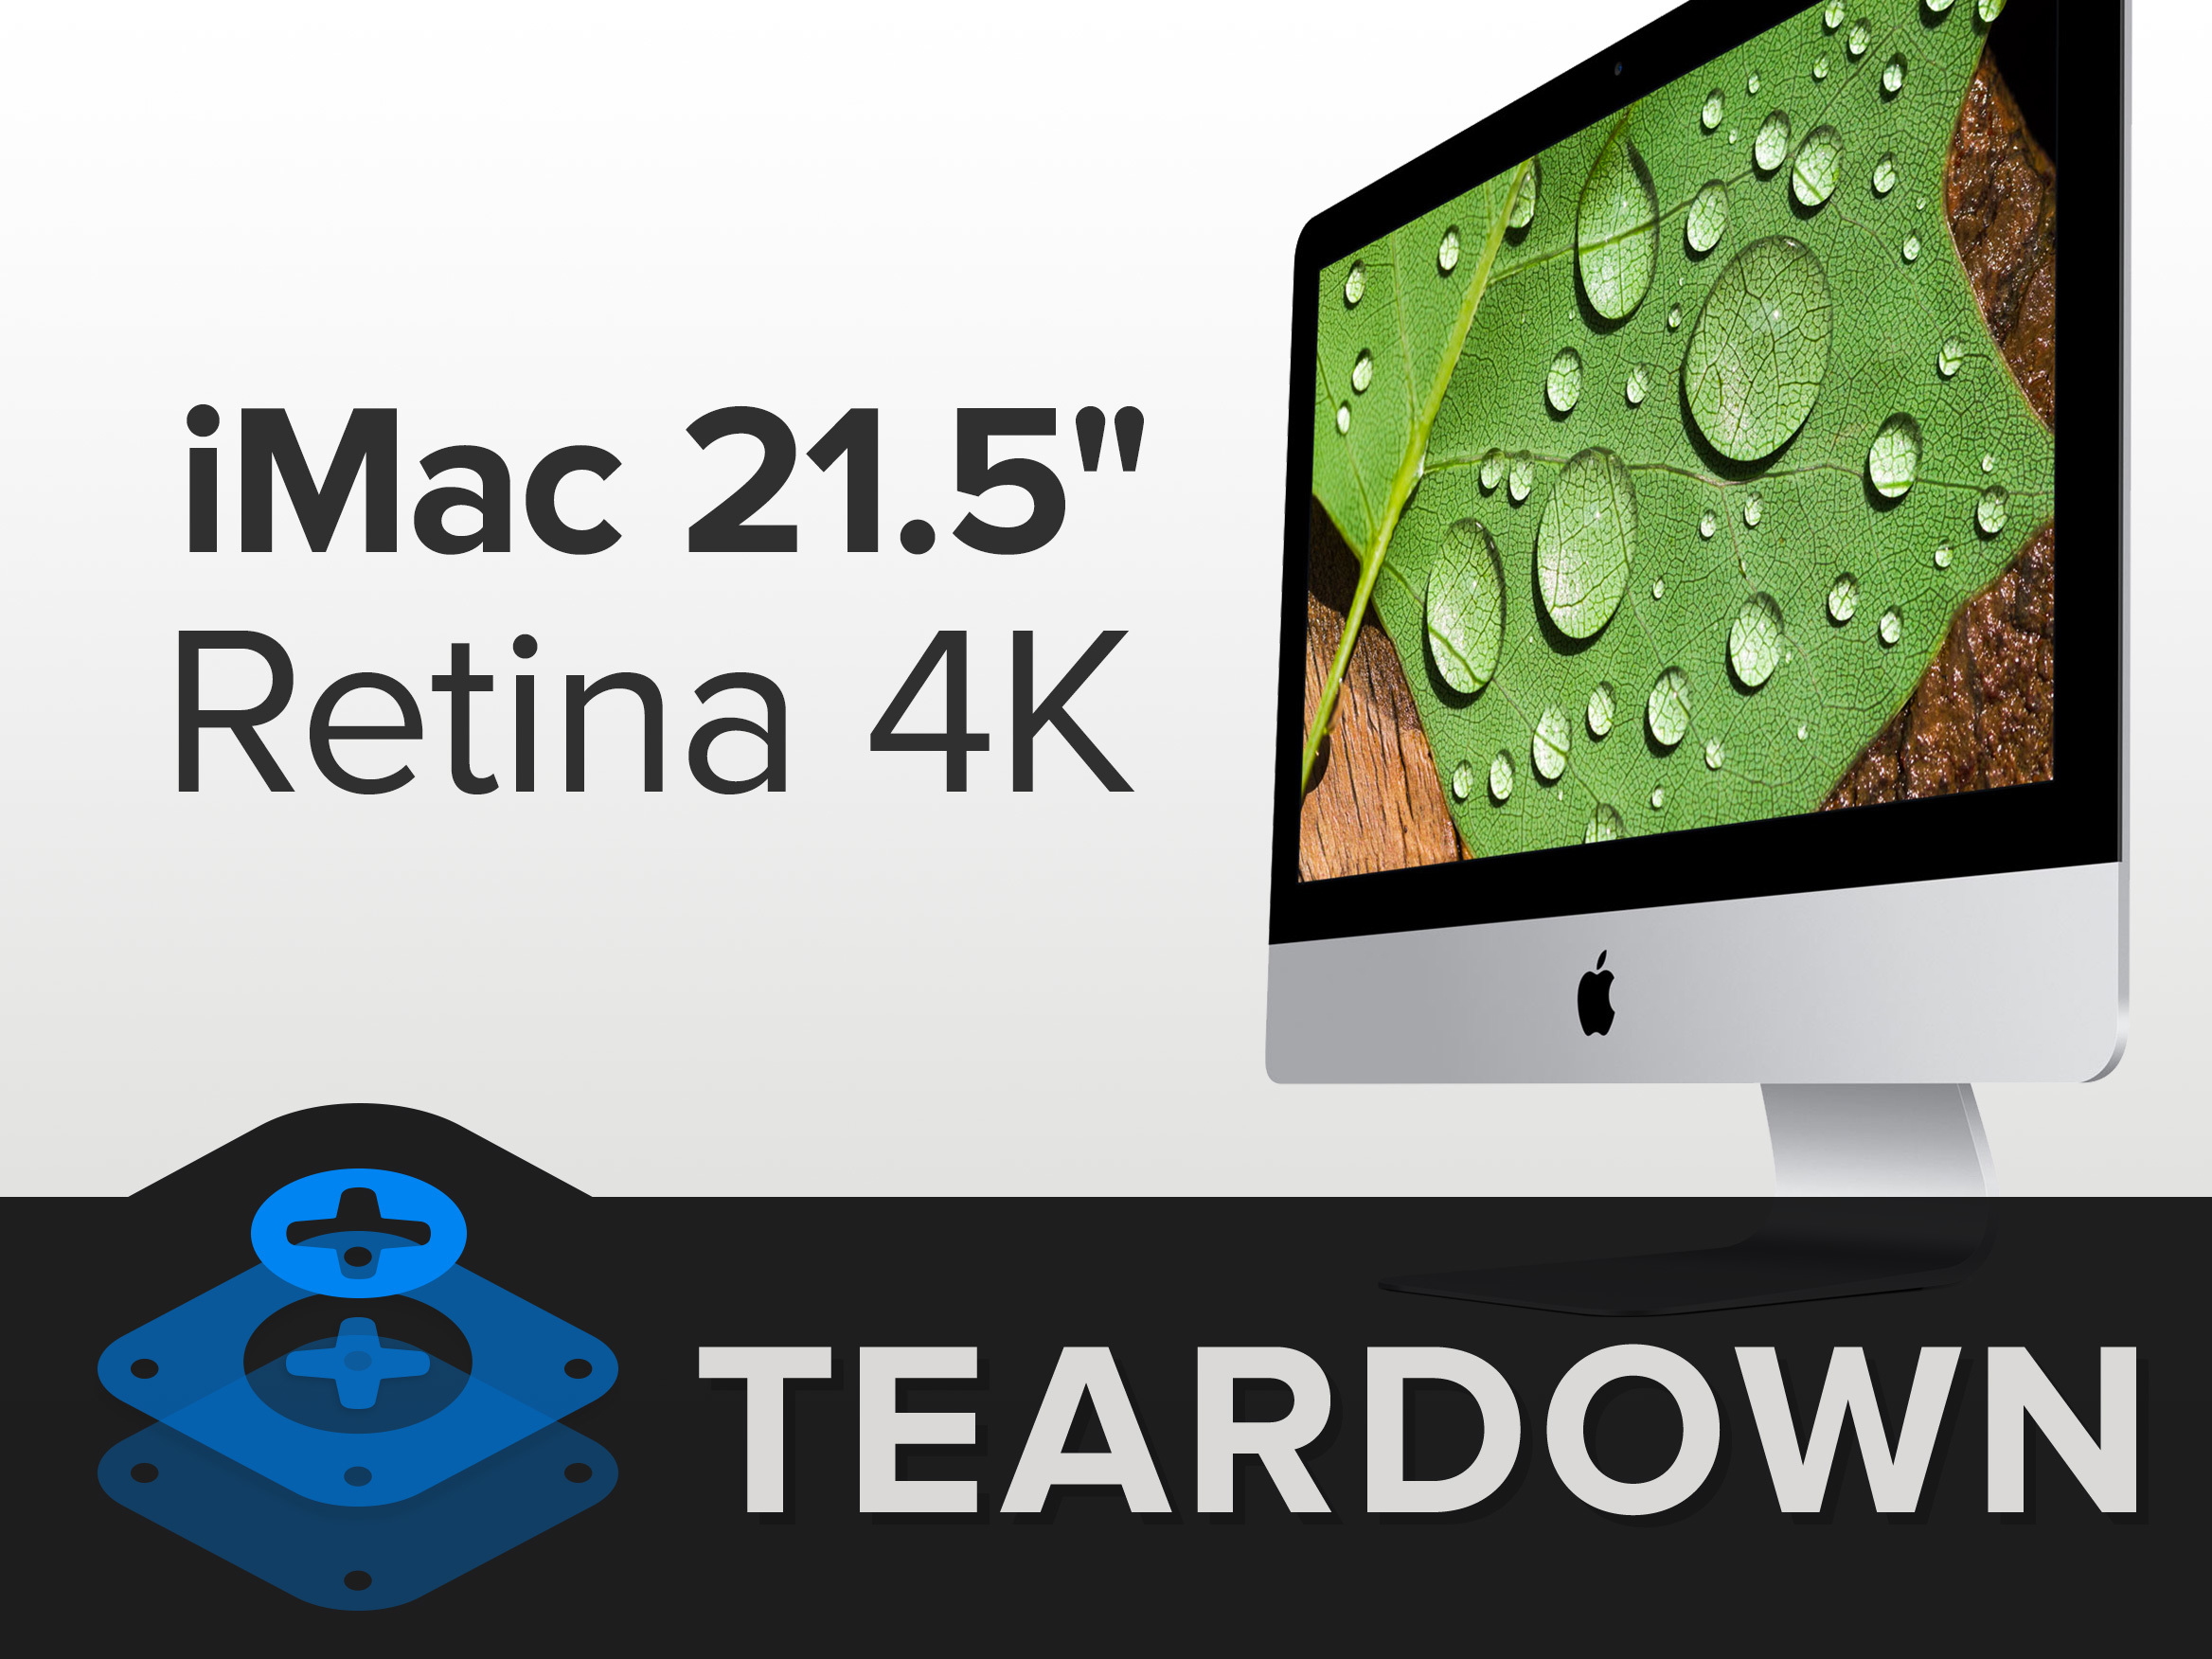 imac intel 21 5 retina 4k display teardown ifixit. Black Bedroom Furniture Sets. Home Design Ideas